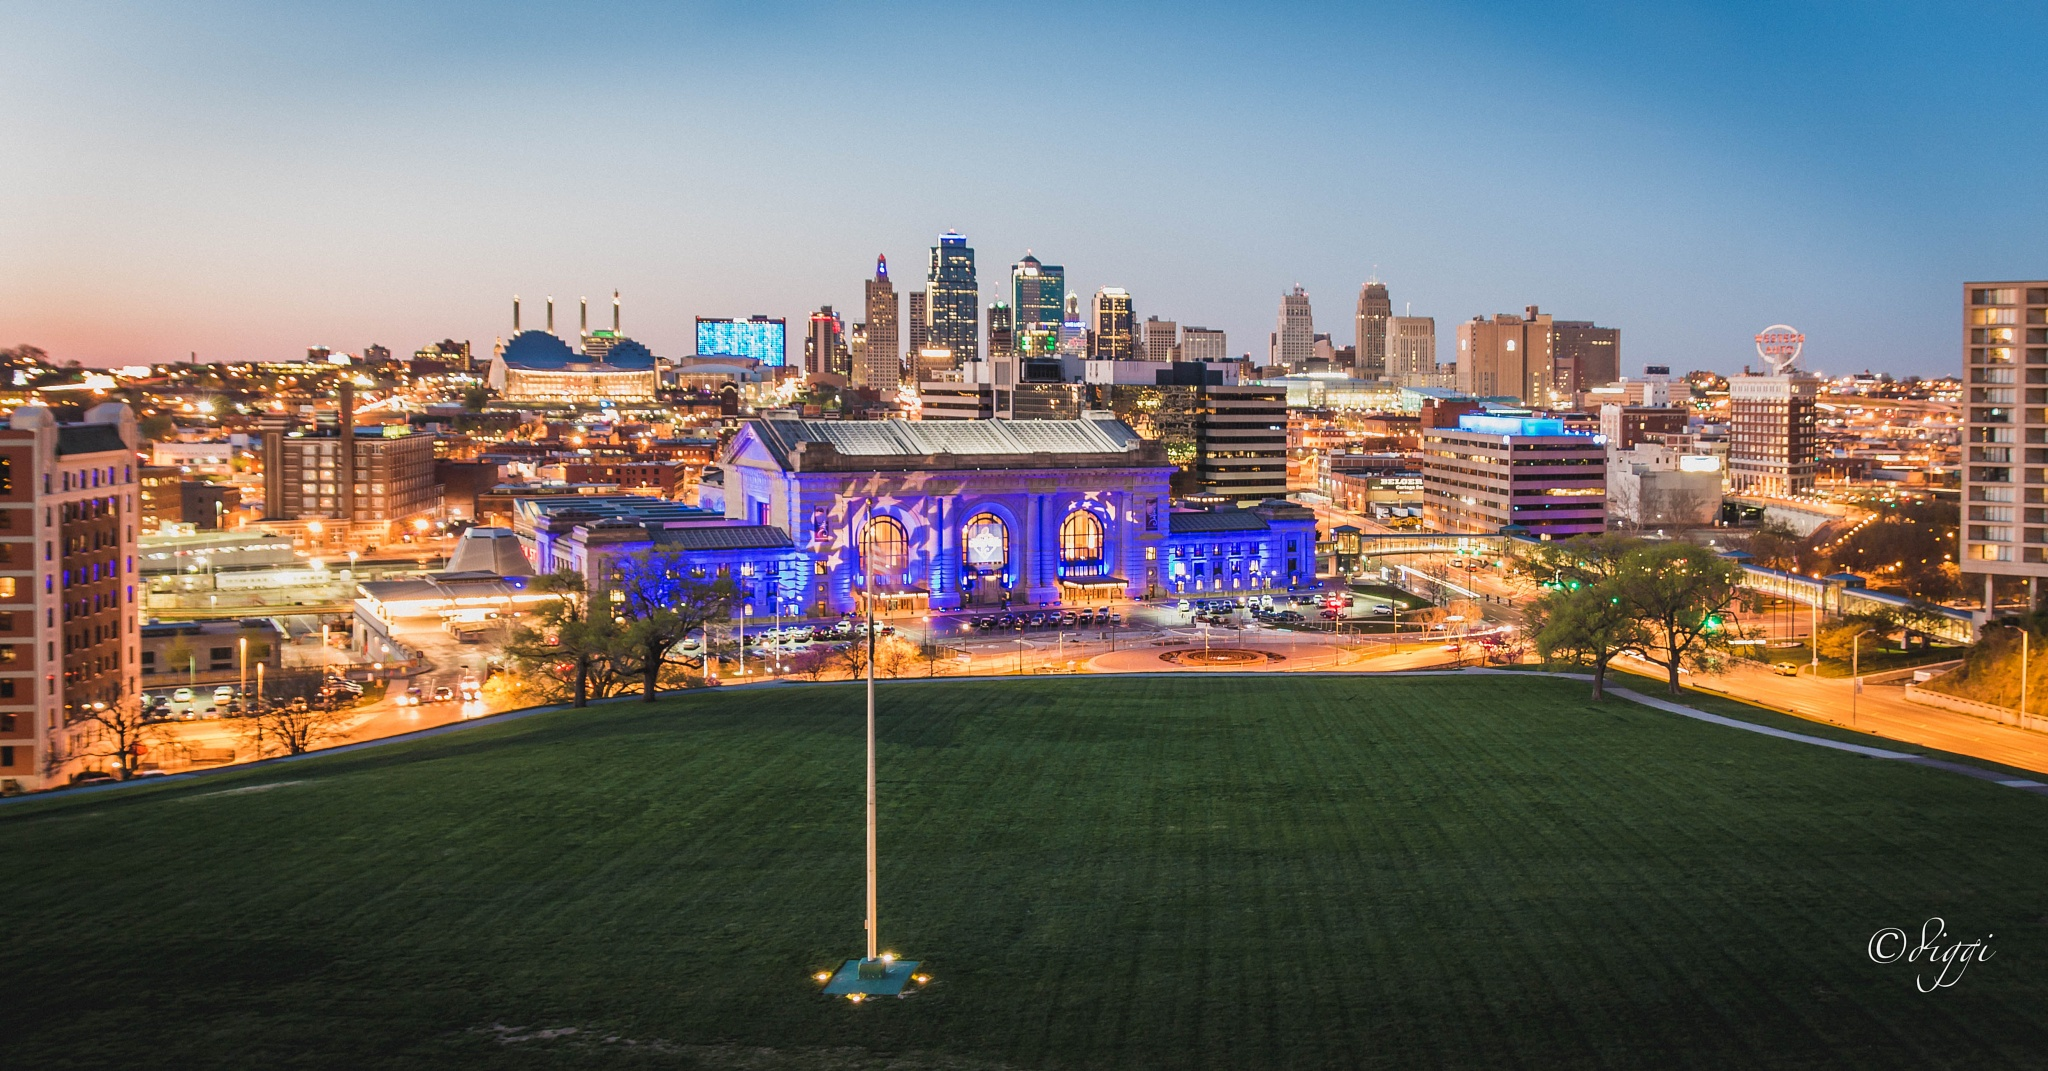 Night is taking over downtown Kansas City by Diggi